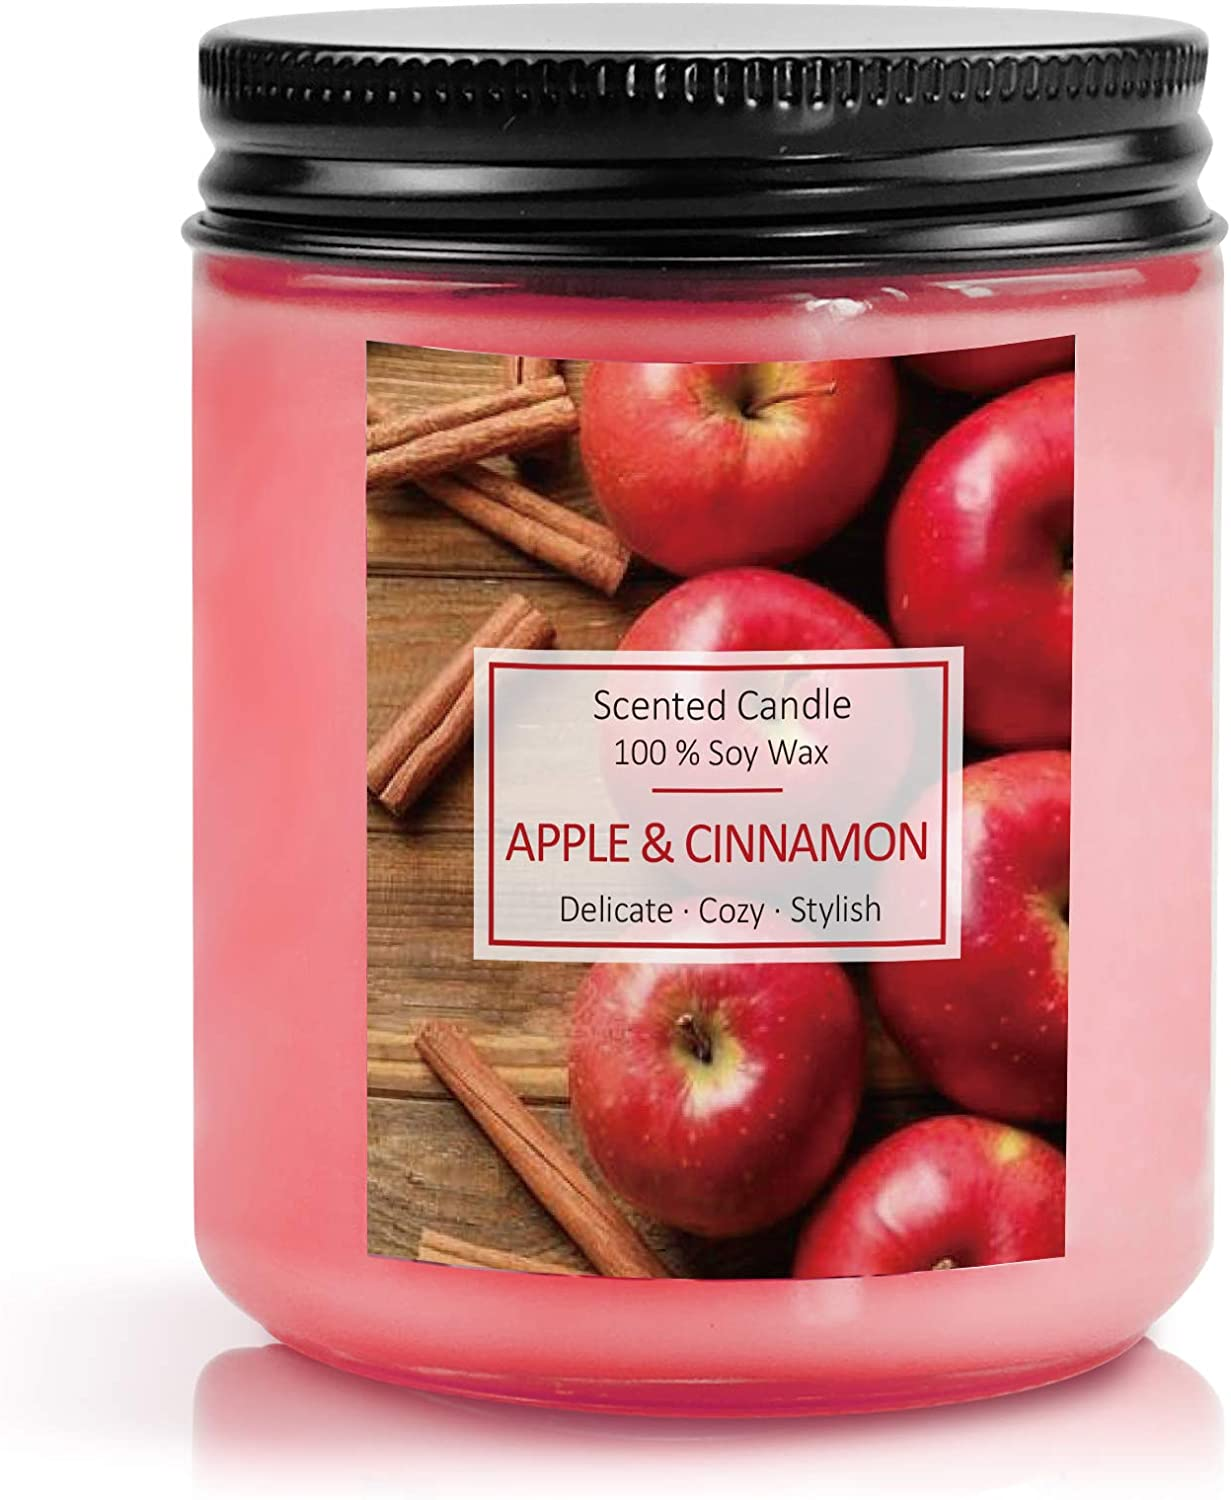 SnailDigit Large Jar Sweet Fall Scented Candle for Home Cinnamon & Apple Aromatherapy Candle Soy Wax Candle for Christmas